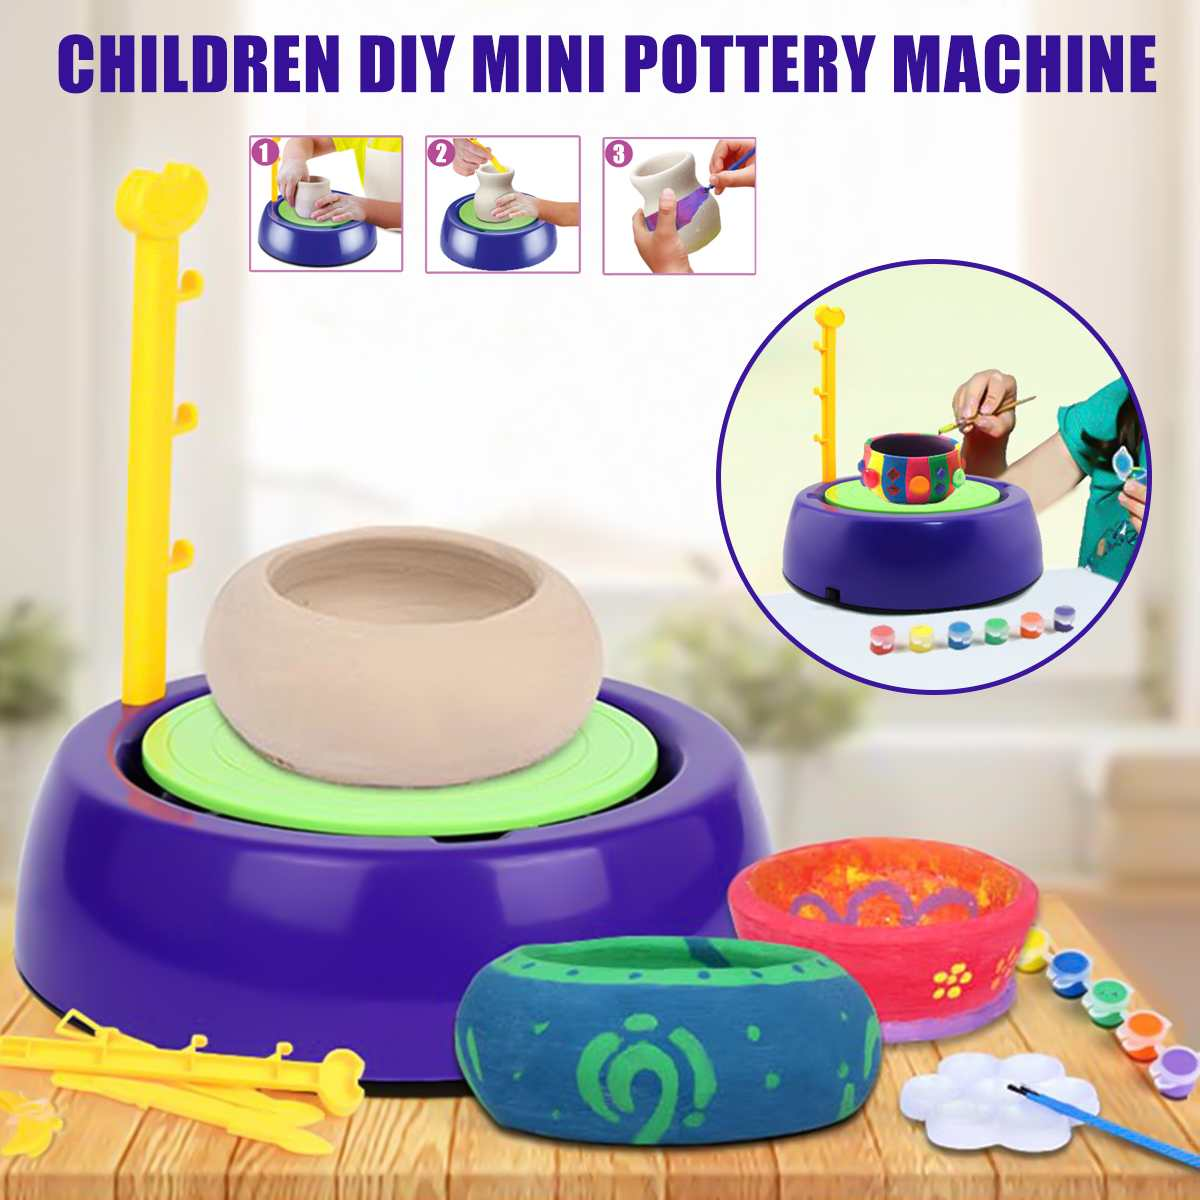 Portable 3V Mini DIY Handmake Electric Ceramic Pottery Machine Pottery Wheels Kids Arts Craft Educational Christmas Gift Toys